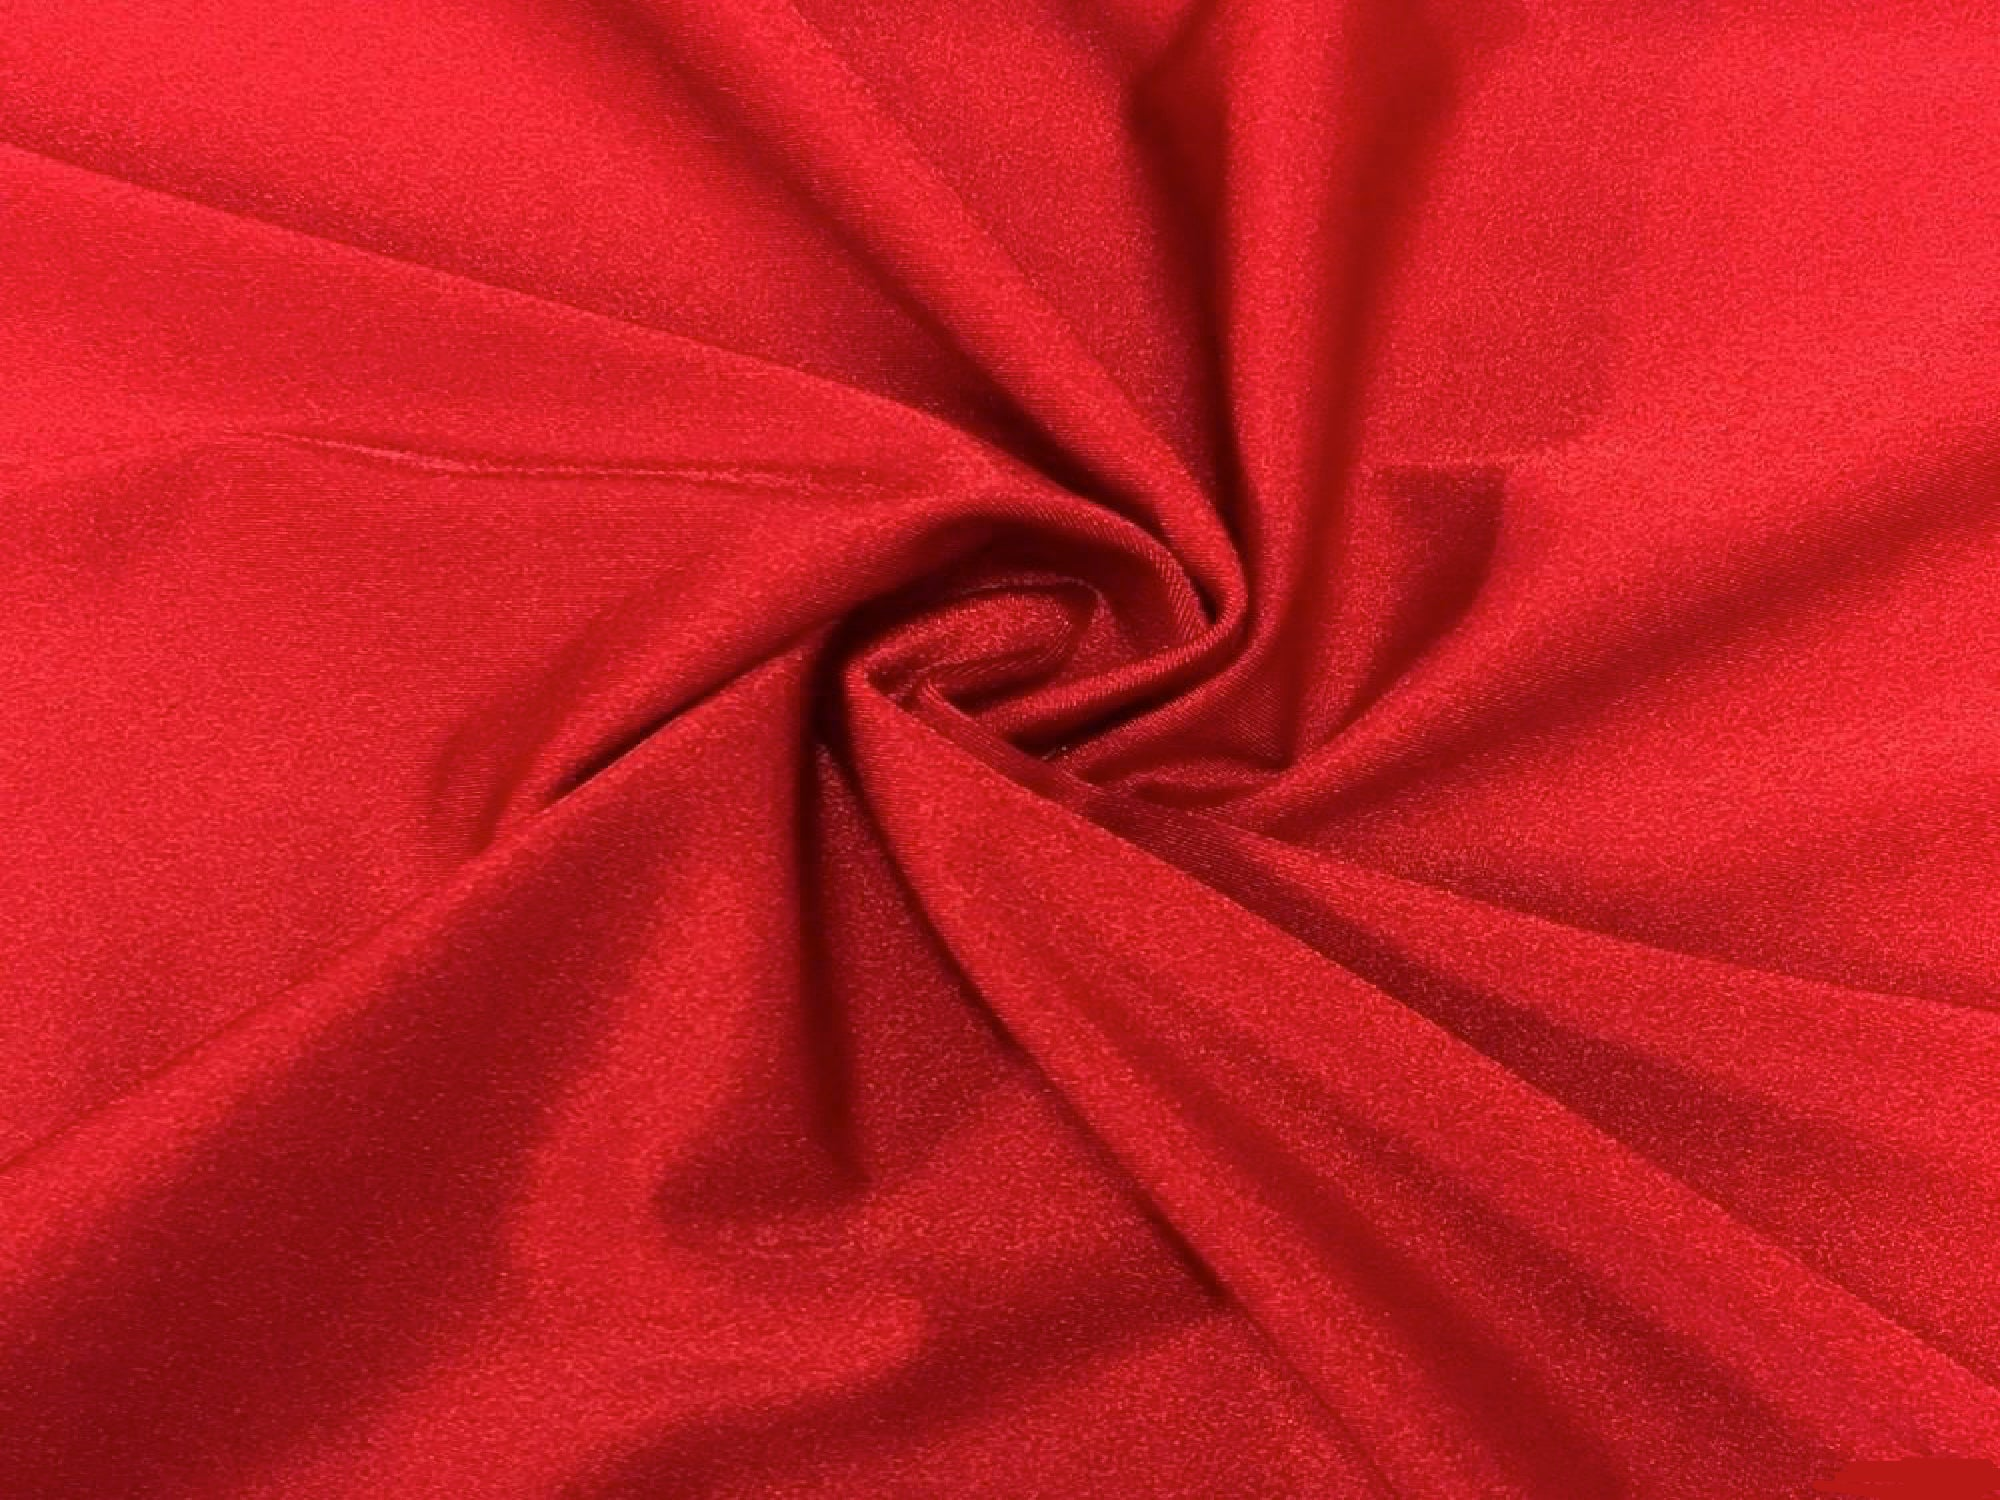 LITE L'AMOUR DRAPE - RED